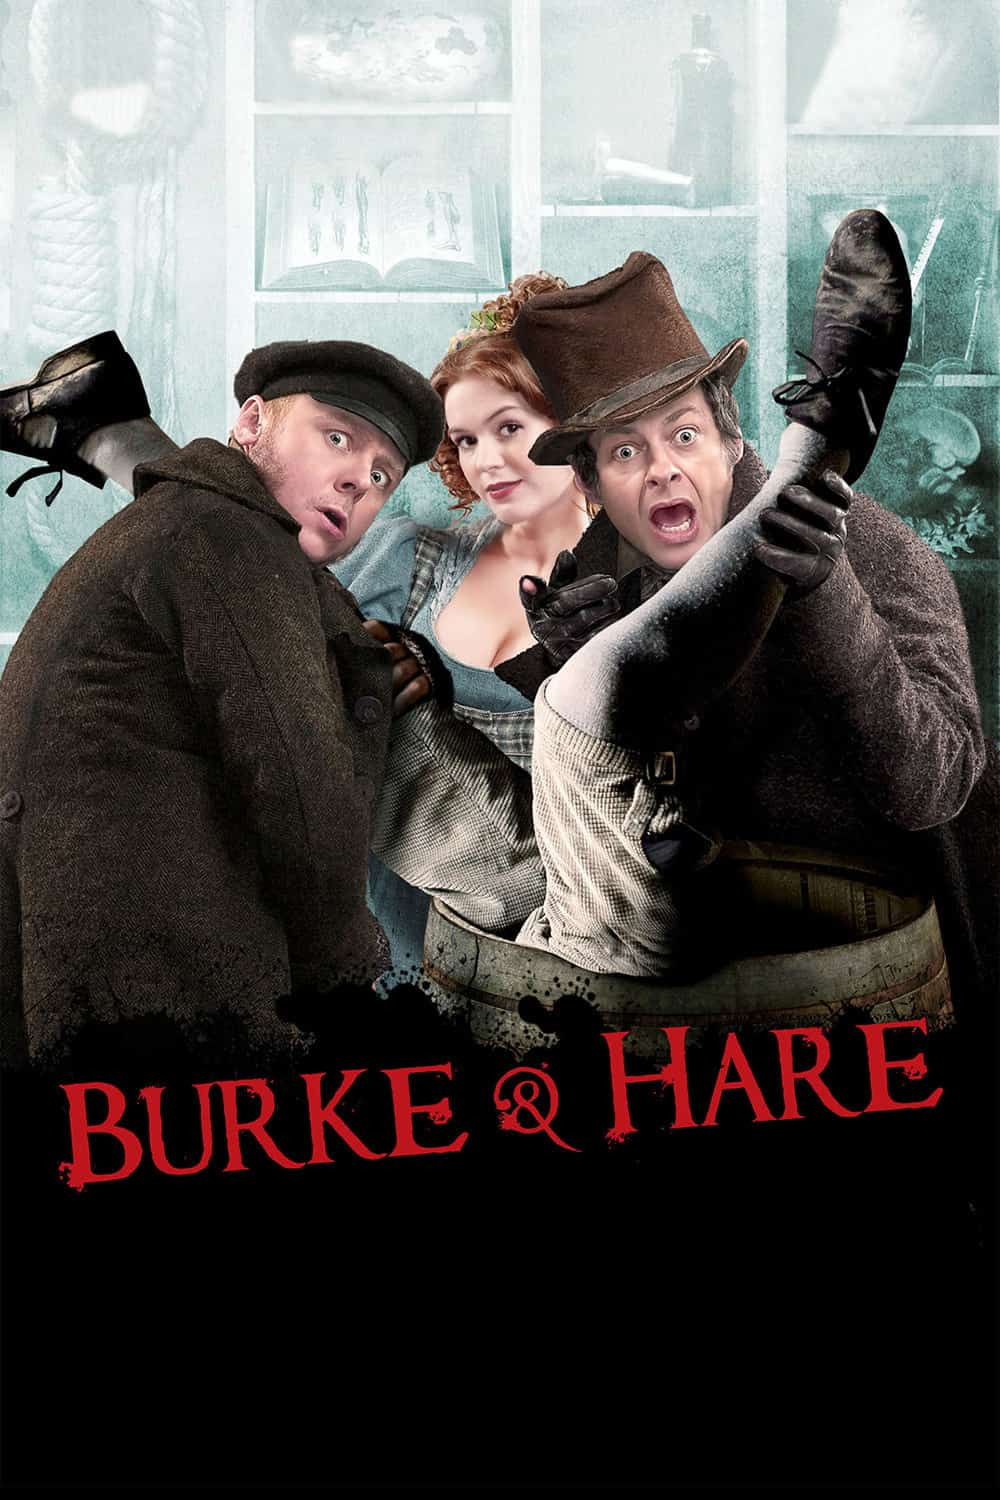 Burke and Hare, 2010